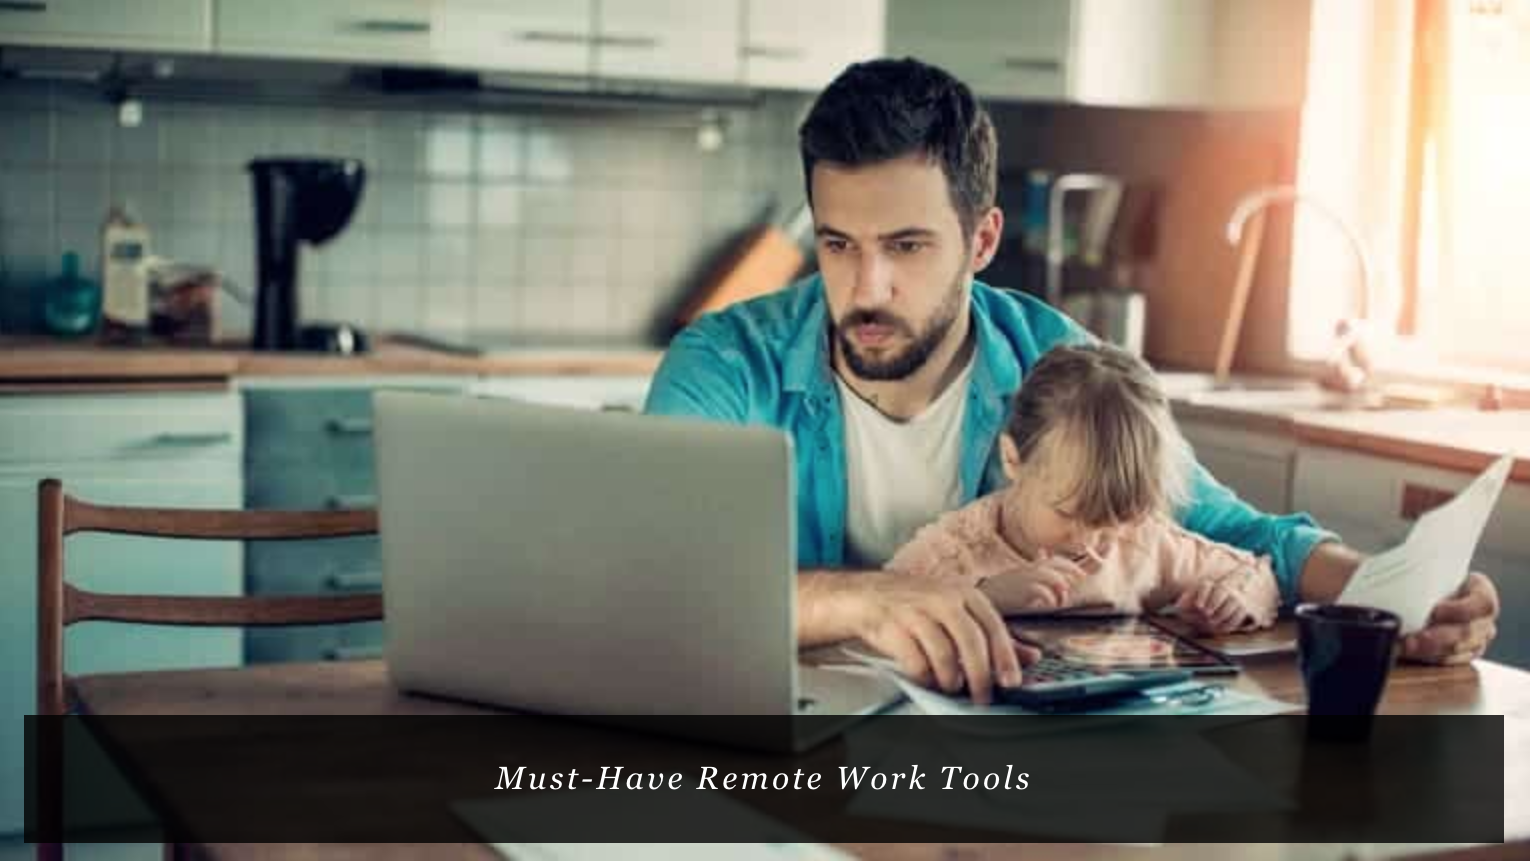 33 Must-Have Remote Work Tools